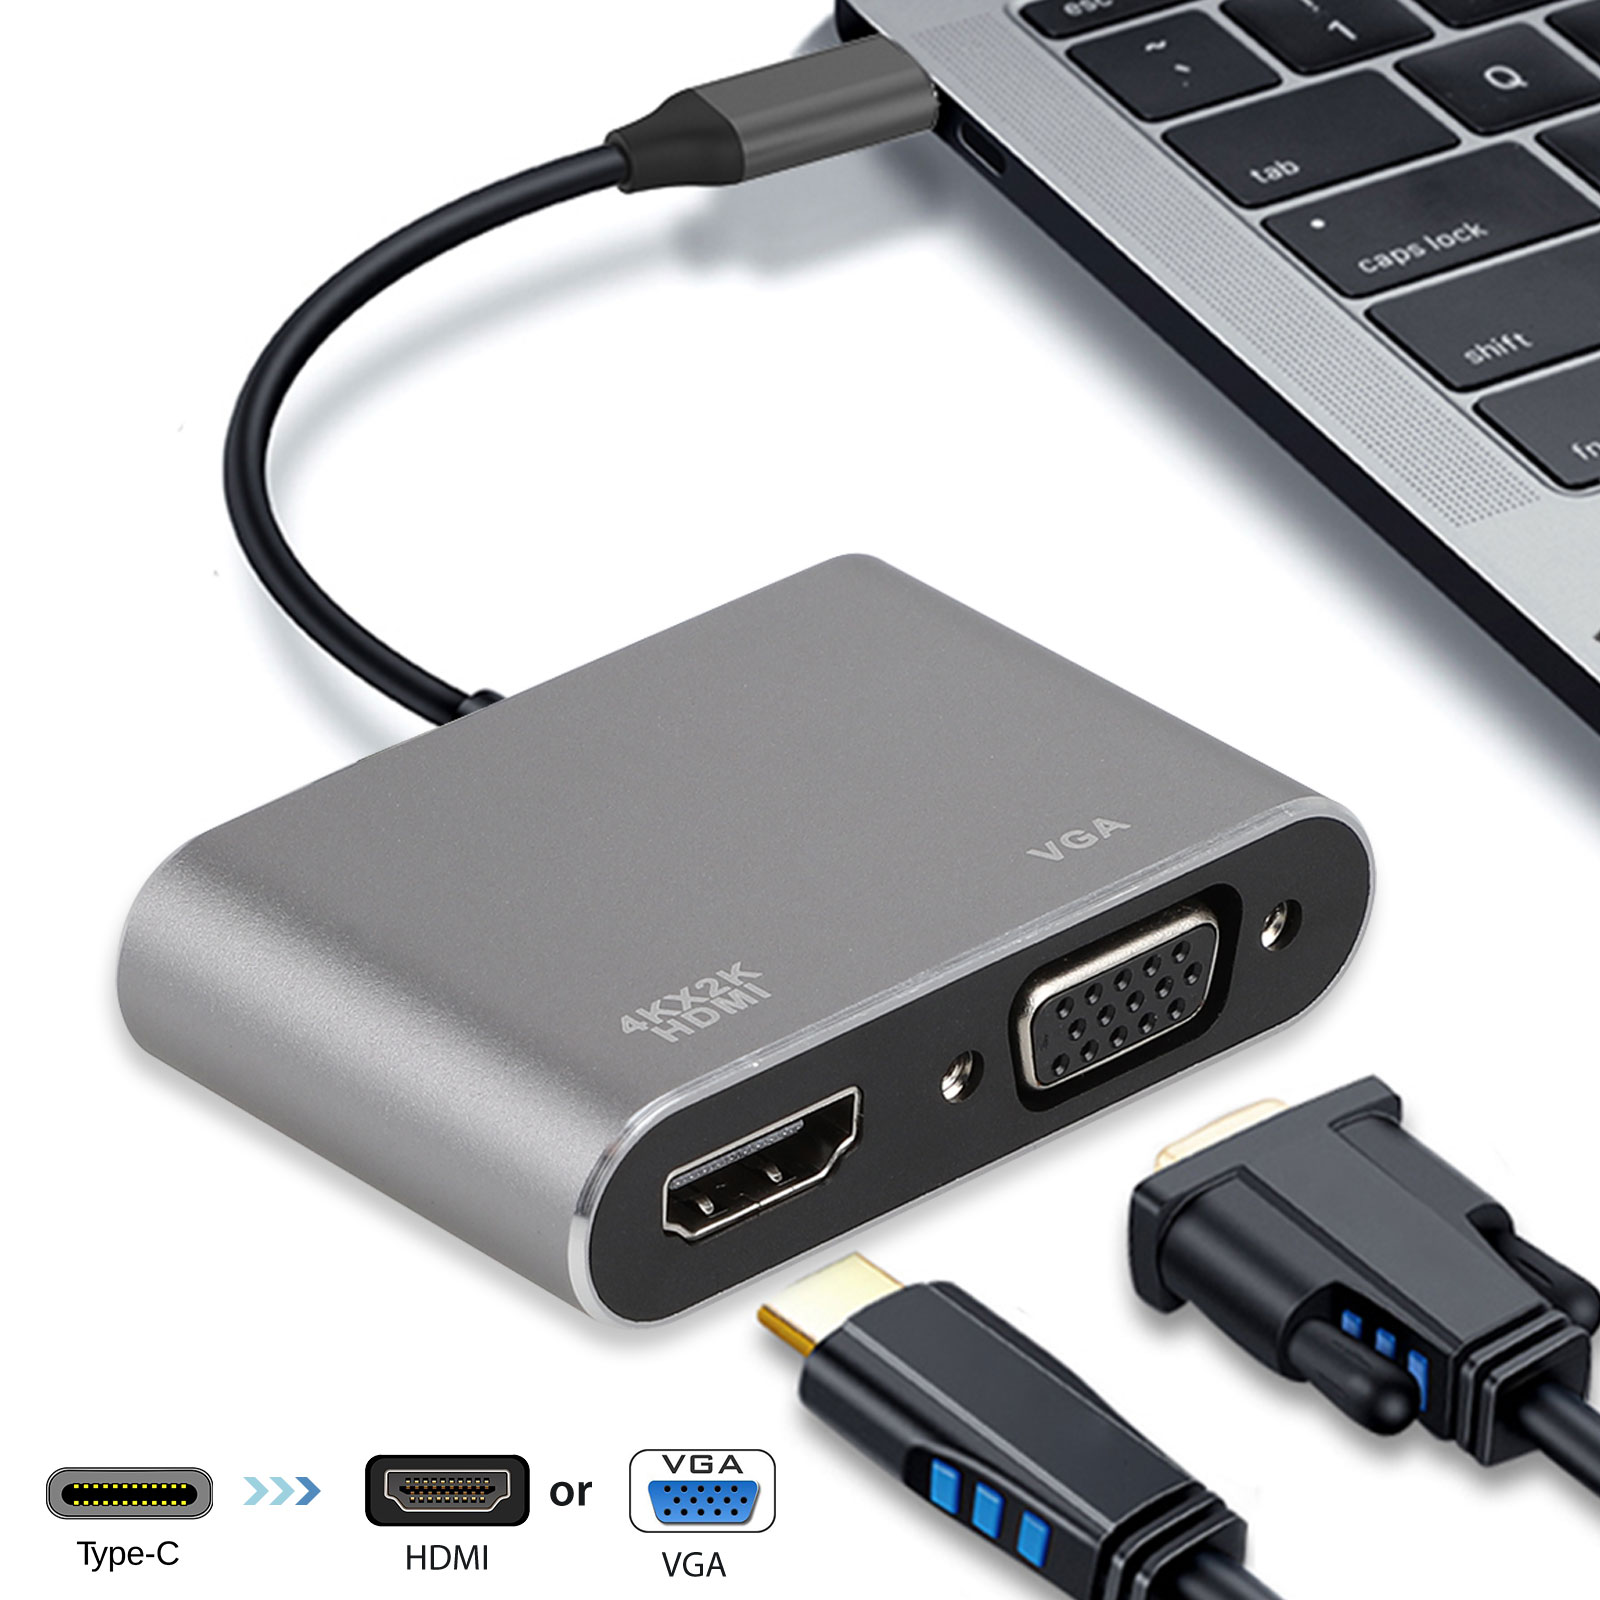 TSV USB C Hub to HDMI VGA Adapter - 2 in 1 USB C Docking Station with 4K HDMI, VGA, Compatible with MacBook Pro and More - Space Grey